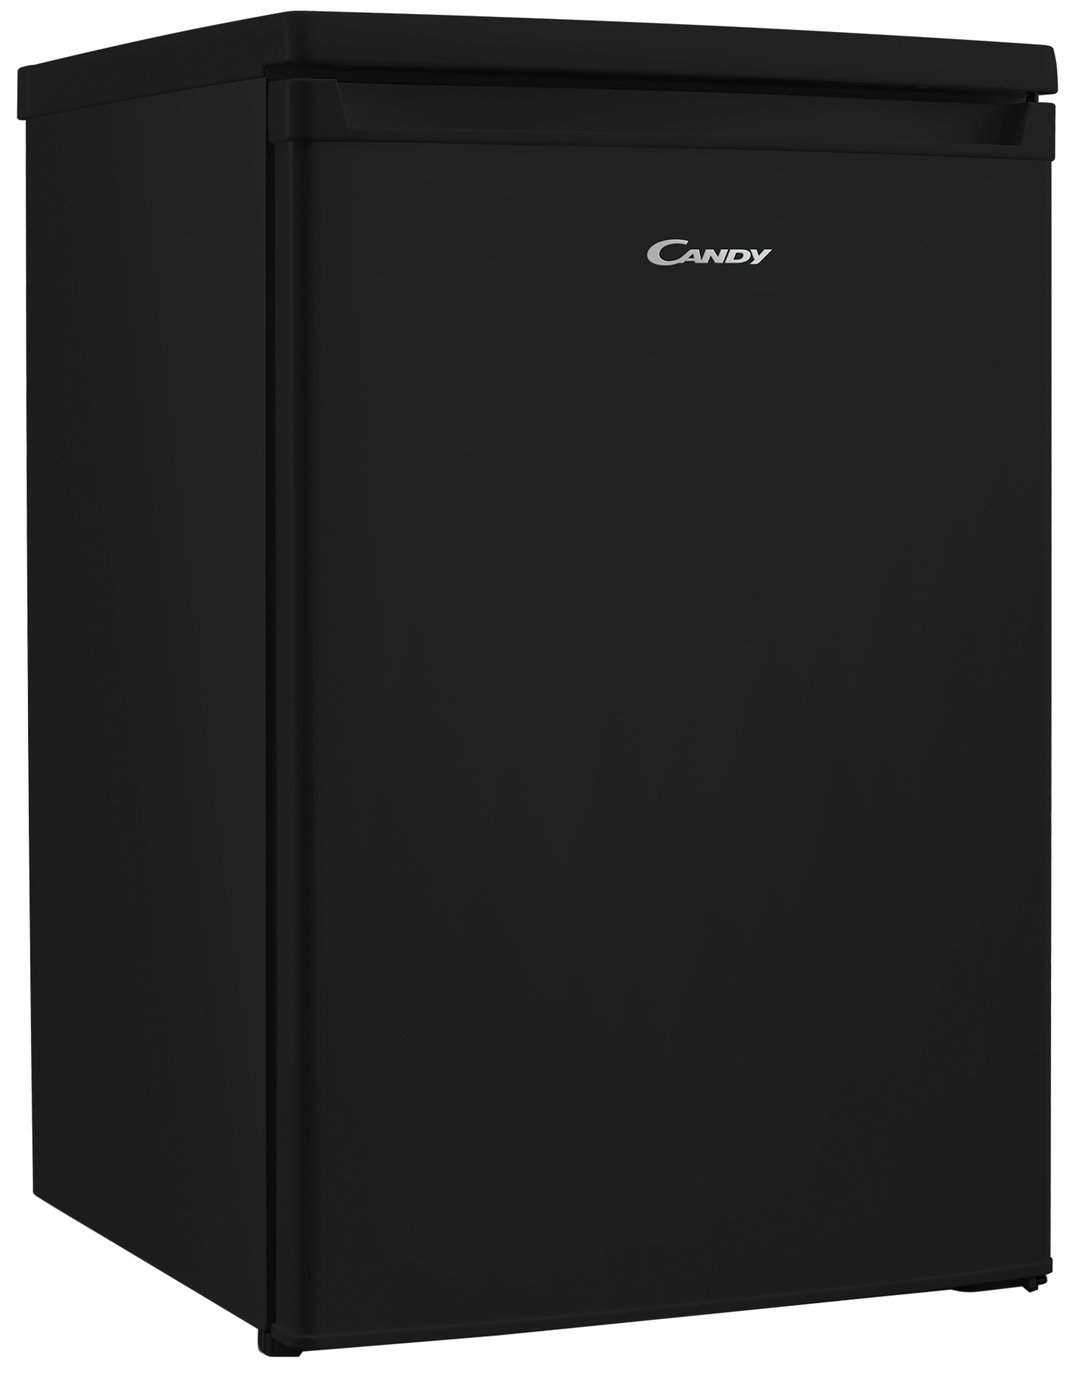 Candy CHTZ 552BK Under Counter Freezer - Black